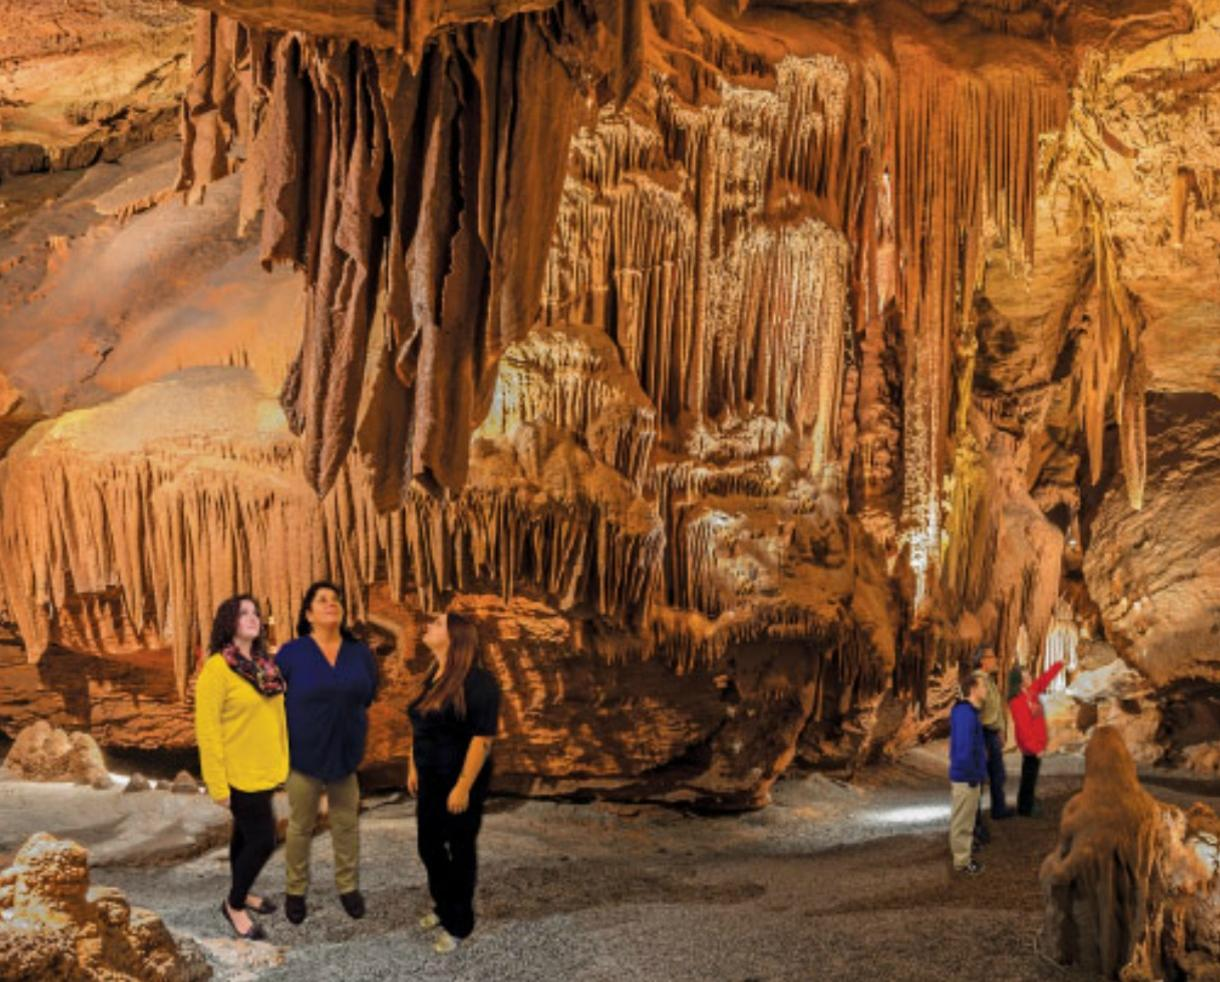 $19 for TWO Shenandoah Caverns Admissions - One Adult & One Child (48% Off!)